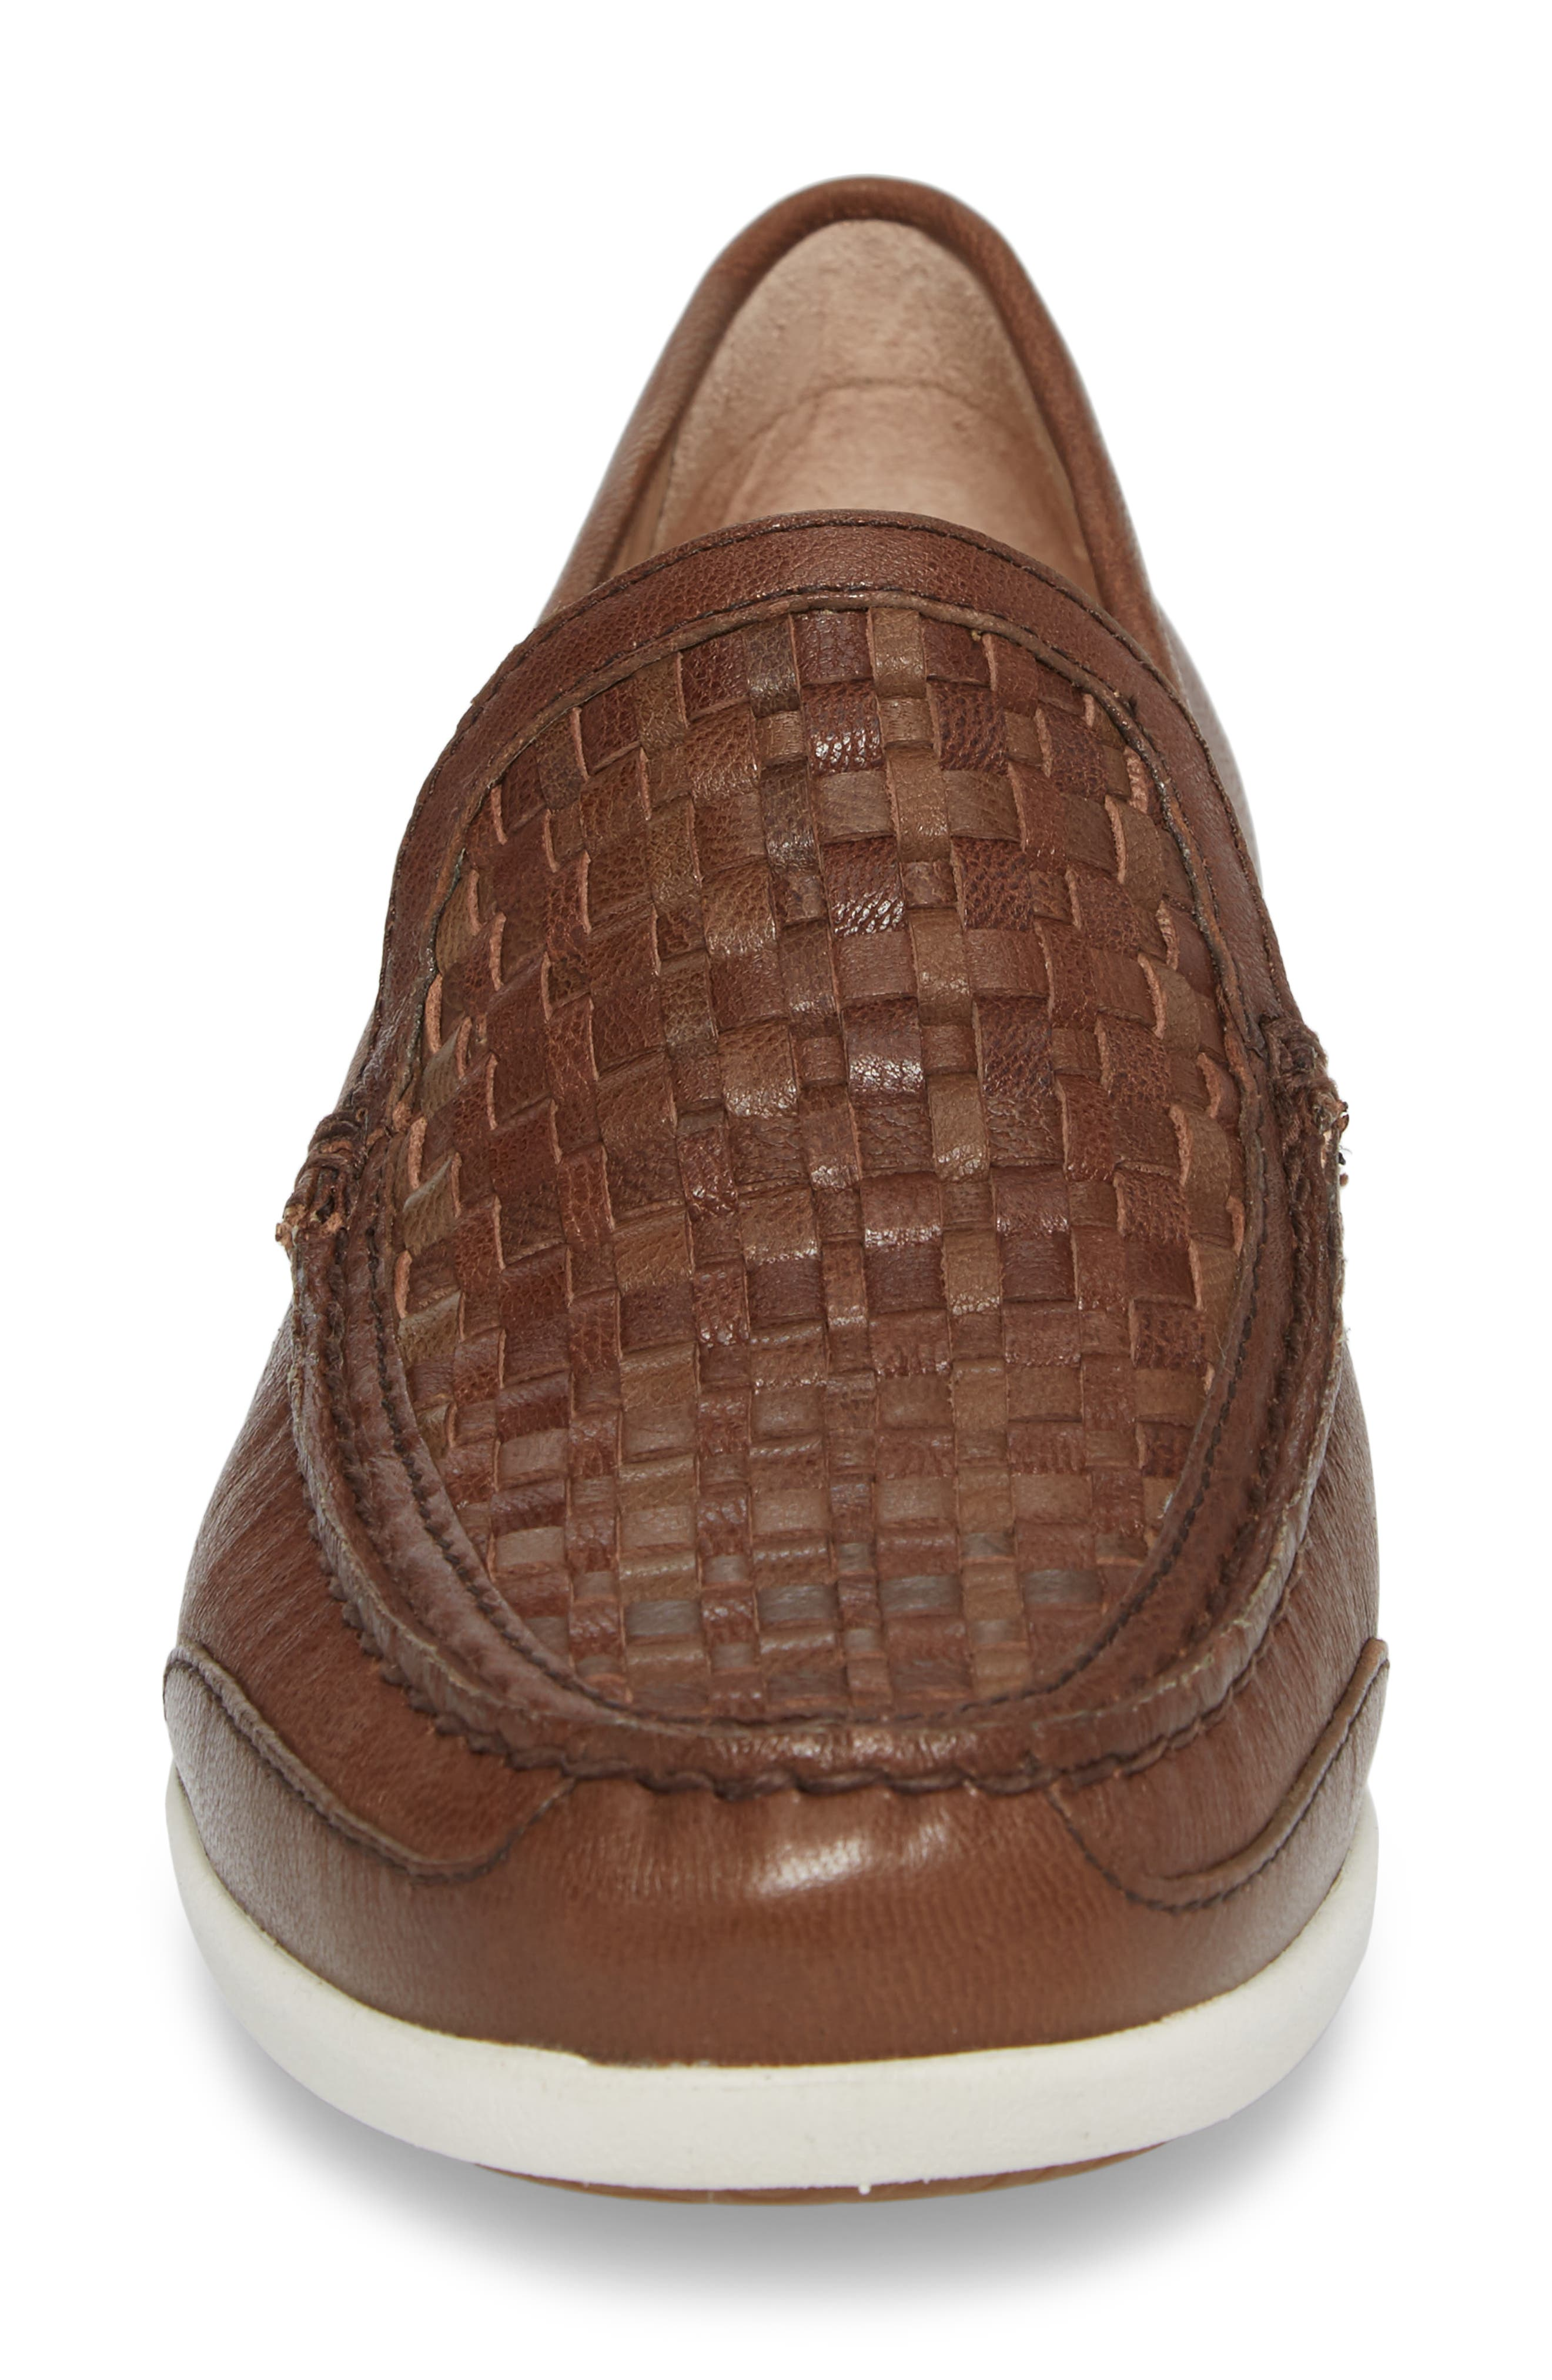 Taormina Woven Loafer,                             Alternate thumbnail 4, color,                             DARK BROWN LEATHER